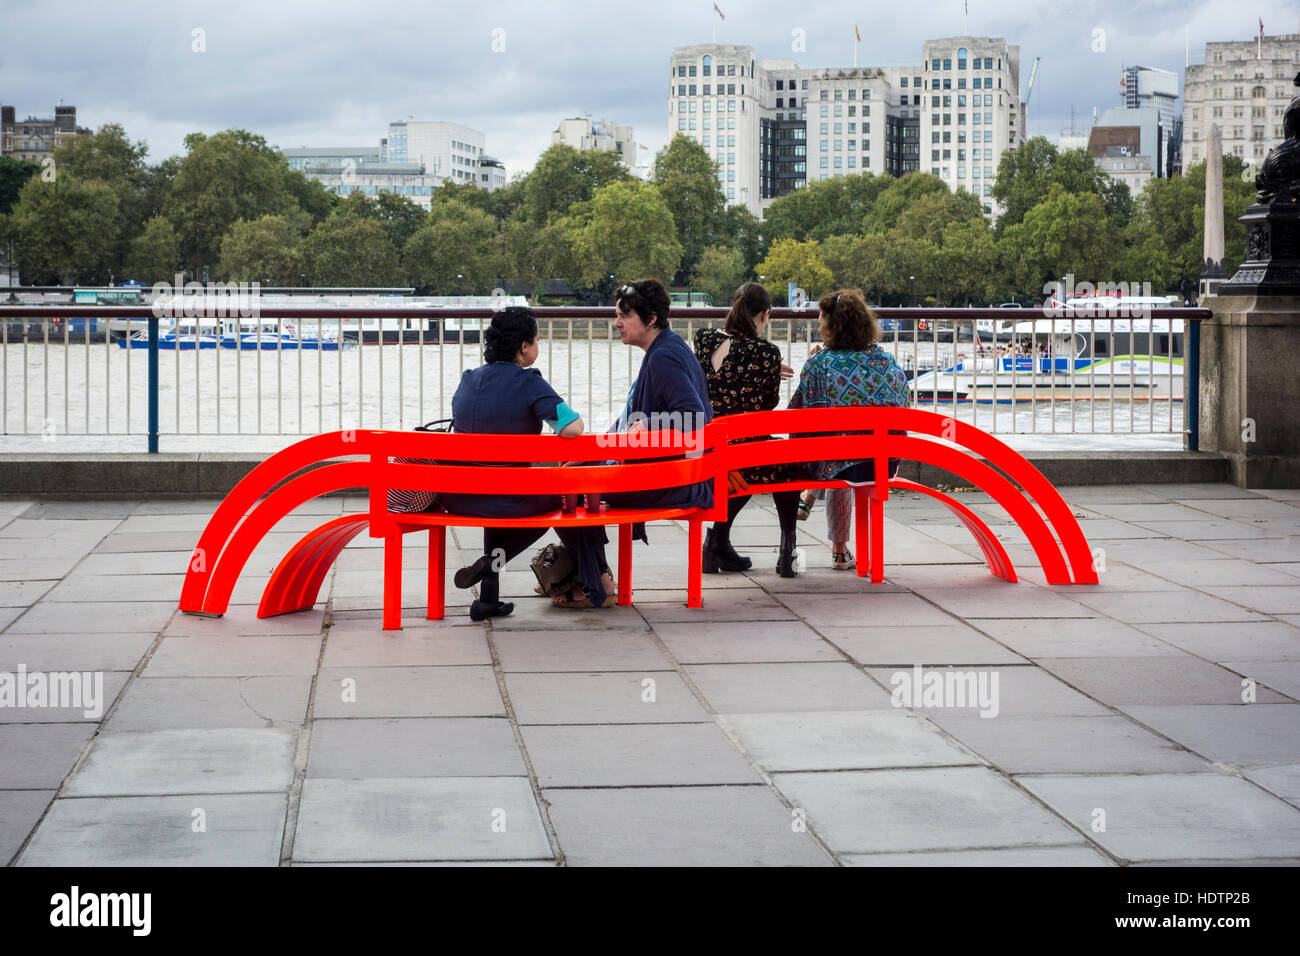 Modified Social Benches NY by Danish artist Jeppe Hein, Southbank, London, UK - Stock Image